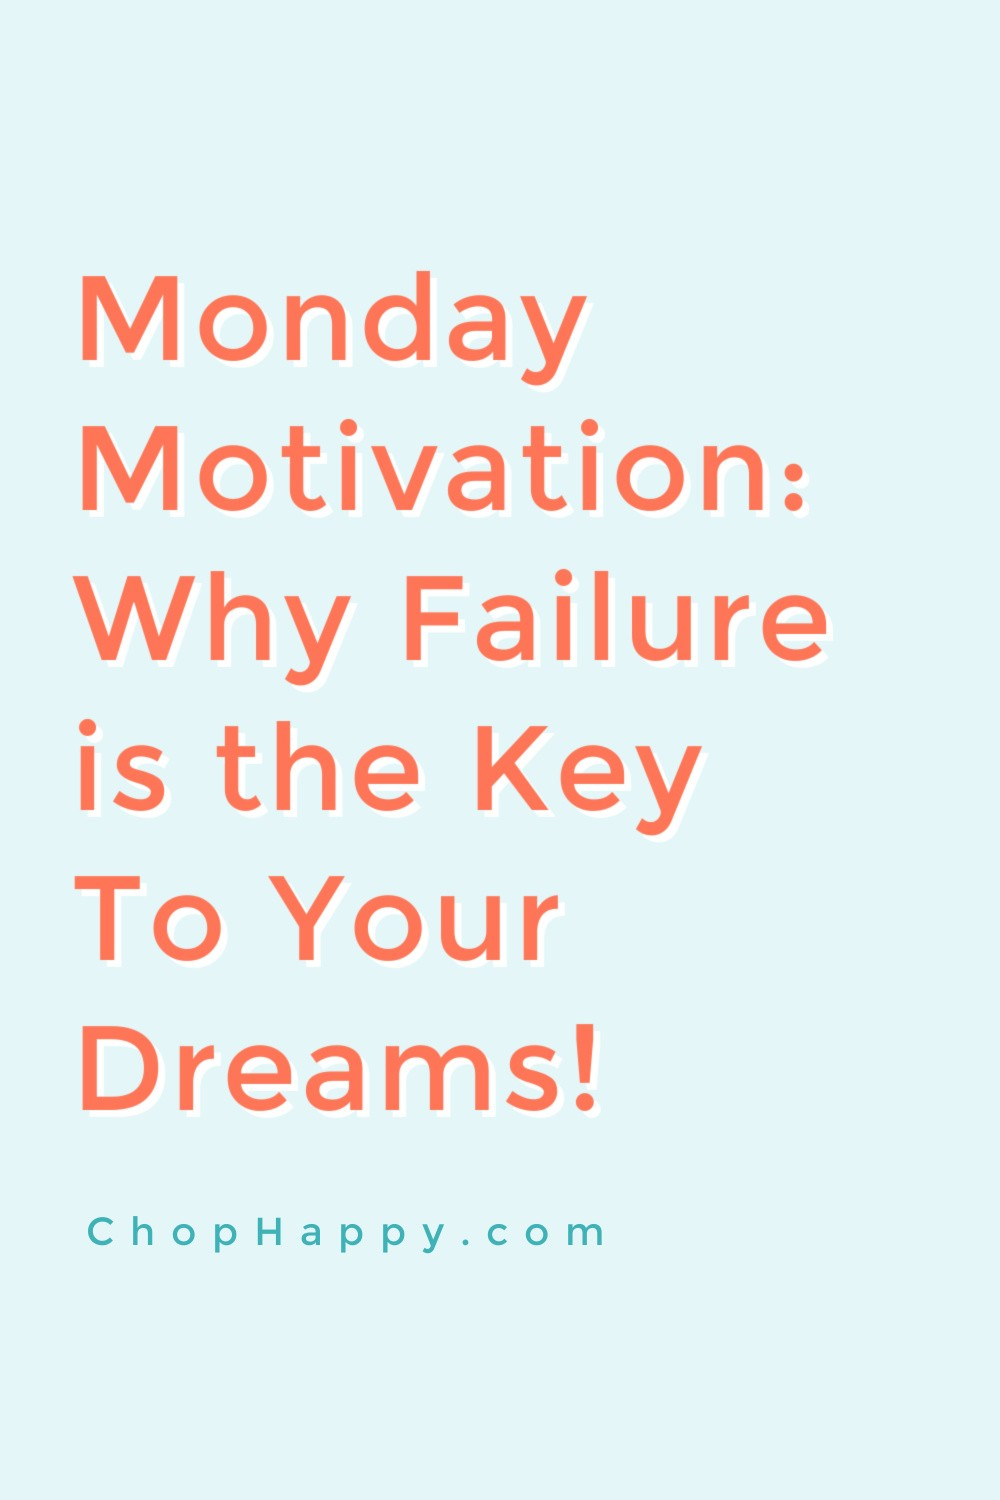 This Weeks Monday Motivation: Why Failure is the Key To Your Dreams! The law of Attraction gives you what you ask for and protects you from what is not right for you! Dream big and learn from your failures. Happy Monday! www.ChopHappy.com #lawofattraction #failure